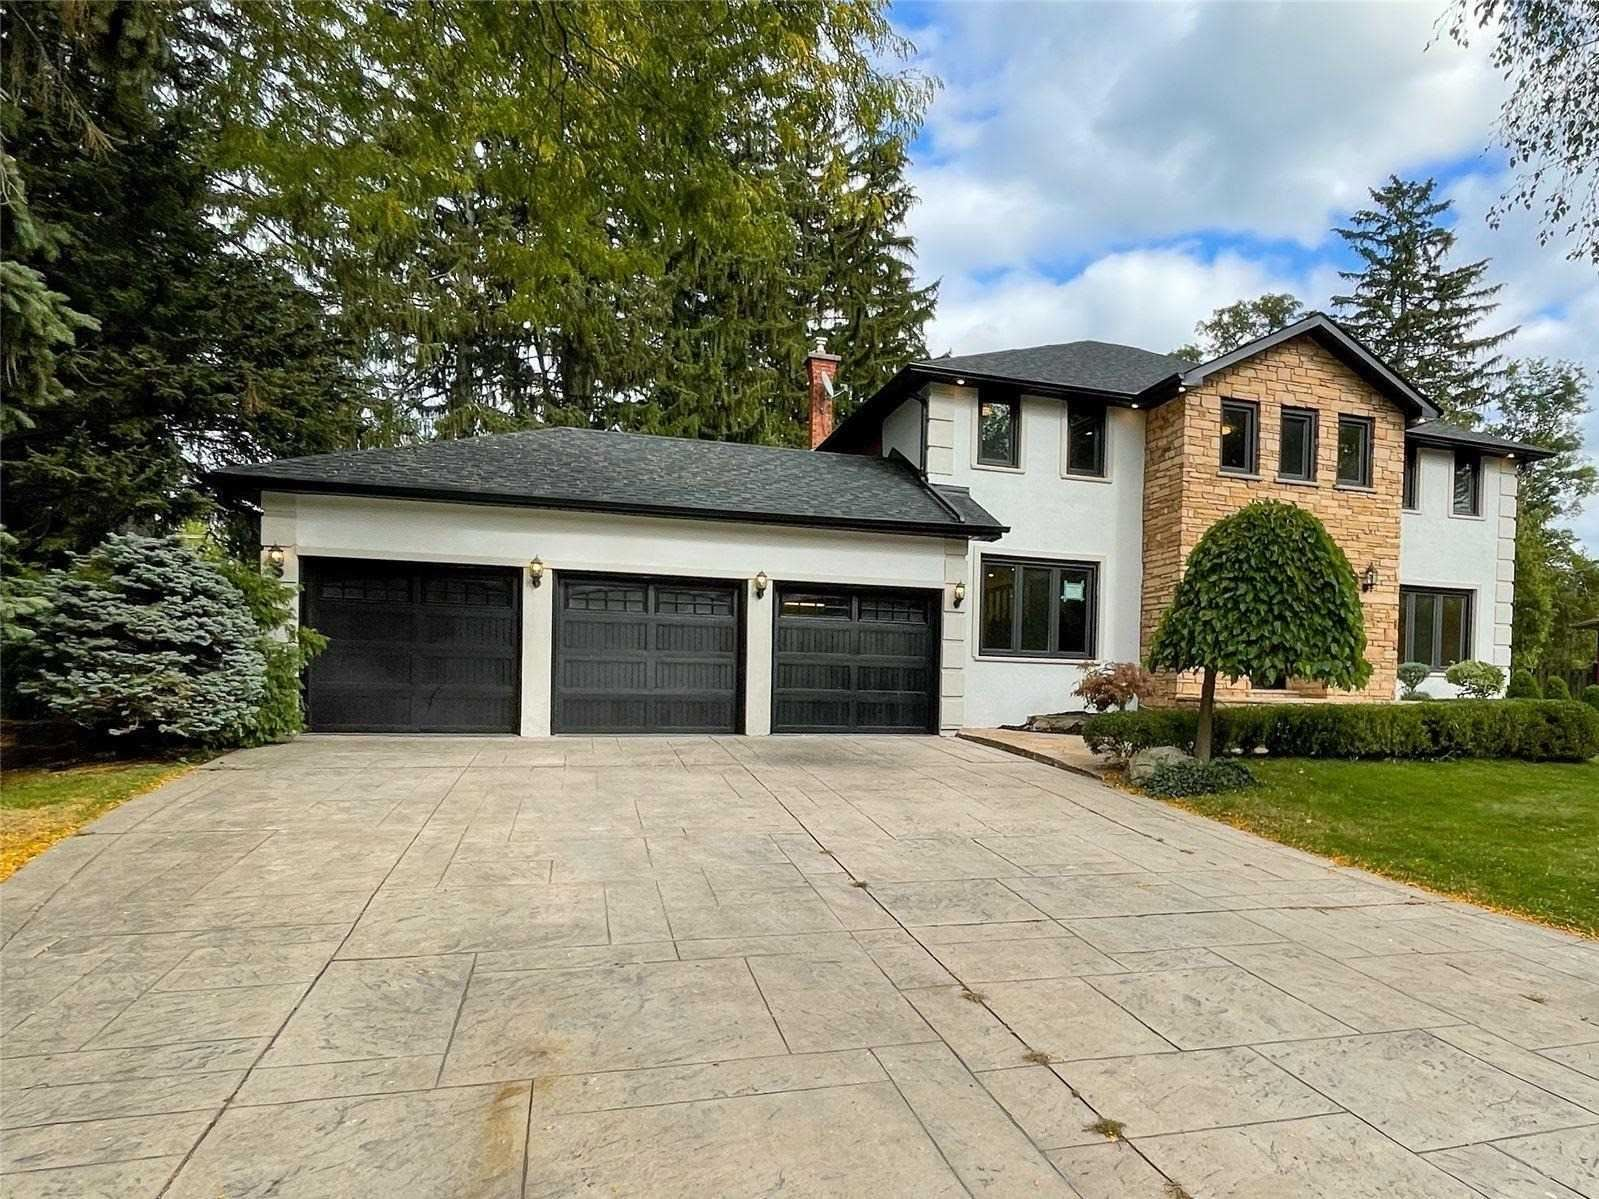 1298 Bunsden Ave, Mississauga, ON L5H3T9 - MLS#: W5388714